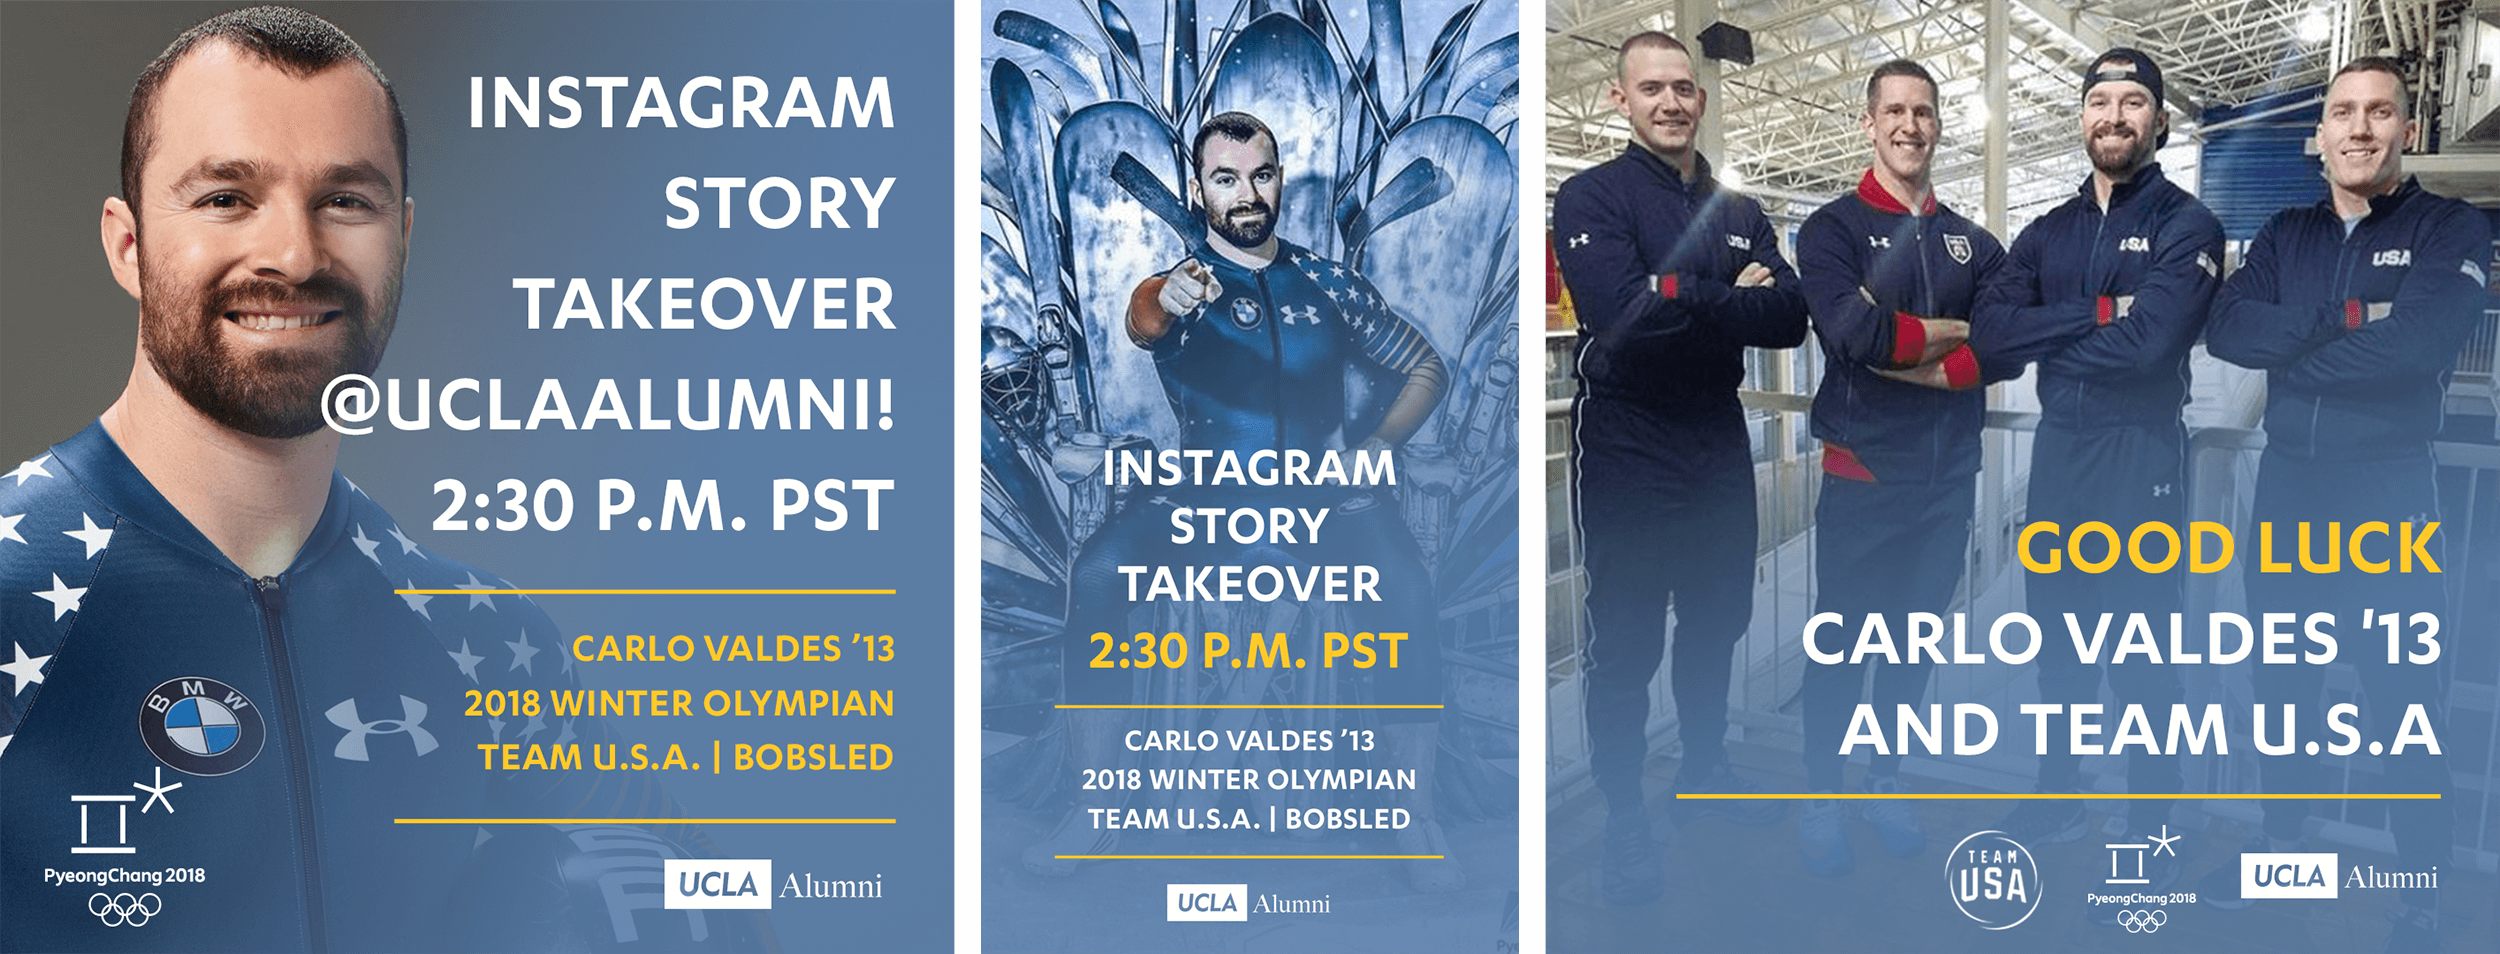 Award winning, multi-channel, social media campaign created in less than 24 hours when an olympic athlete became available for an Instagram takeover.